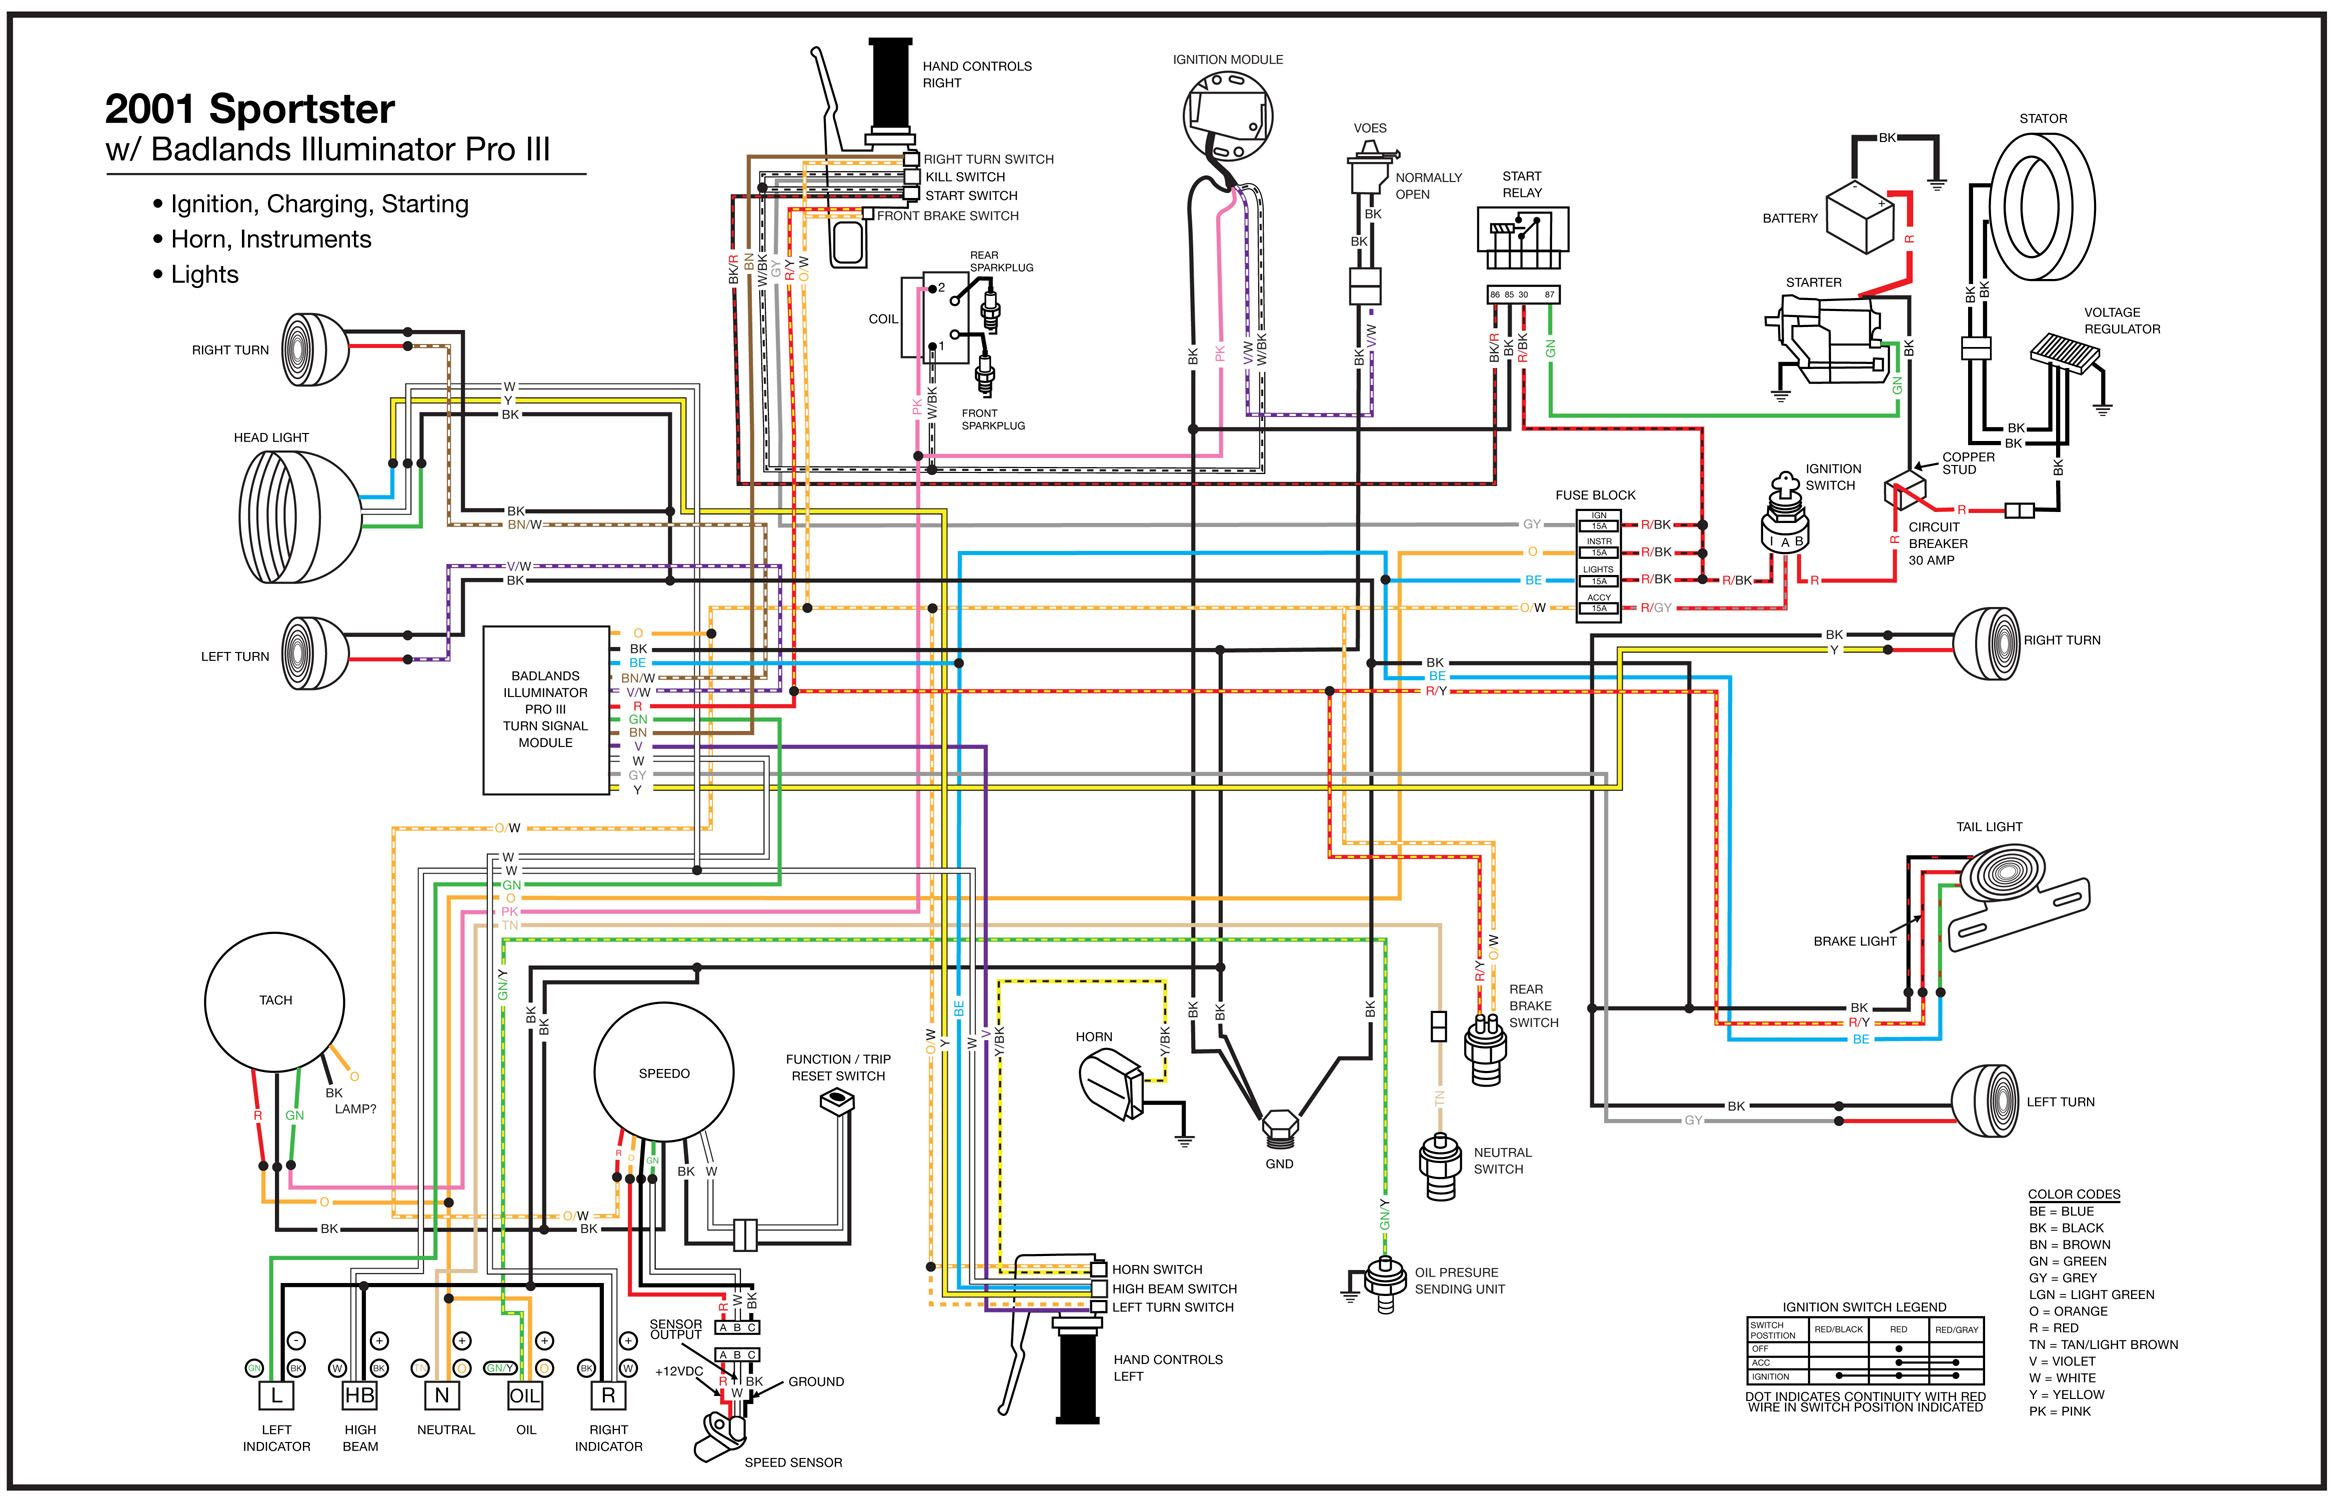 rigid evo sportster illuminator pro 3 wiring diagram the sportster and buell motorcycle forum